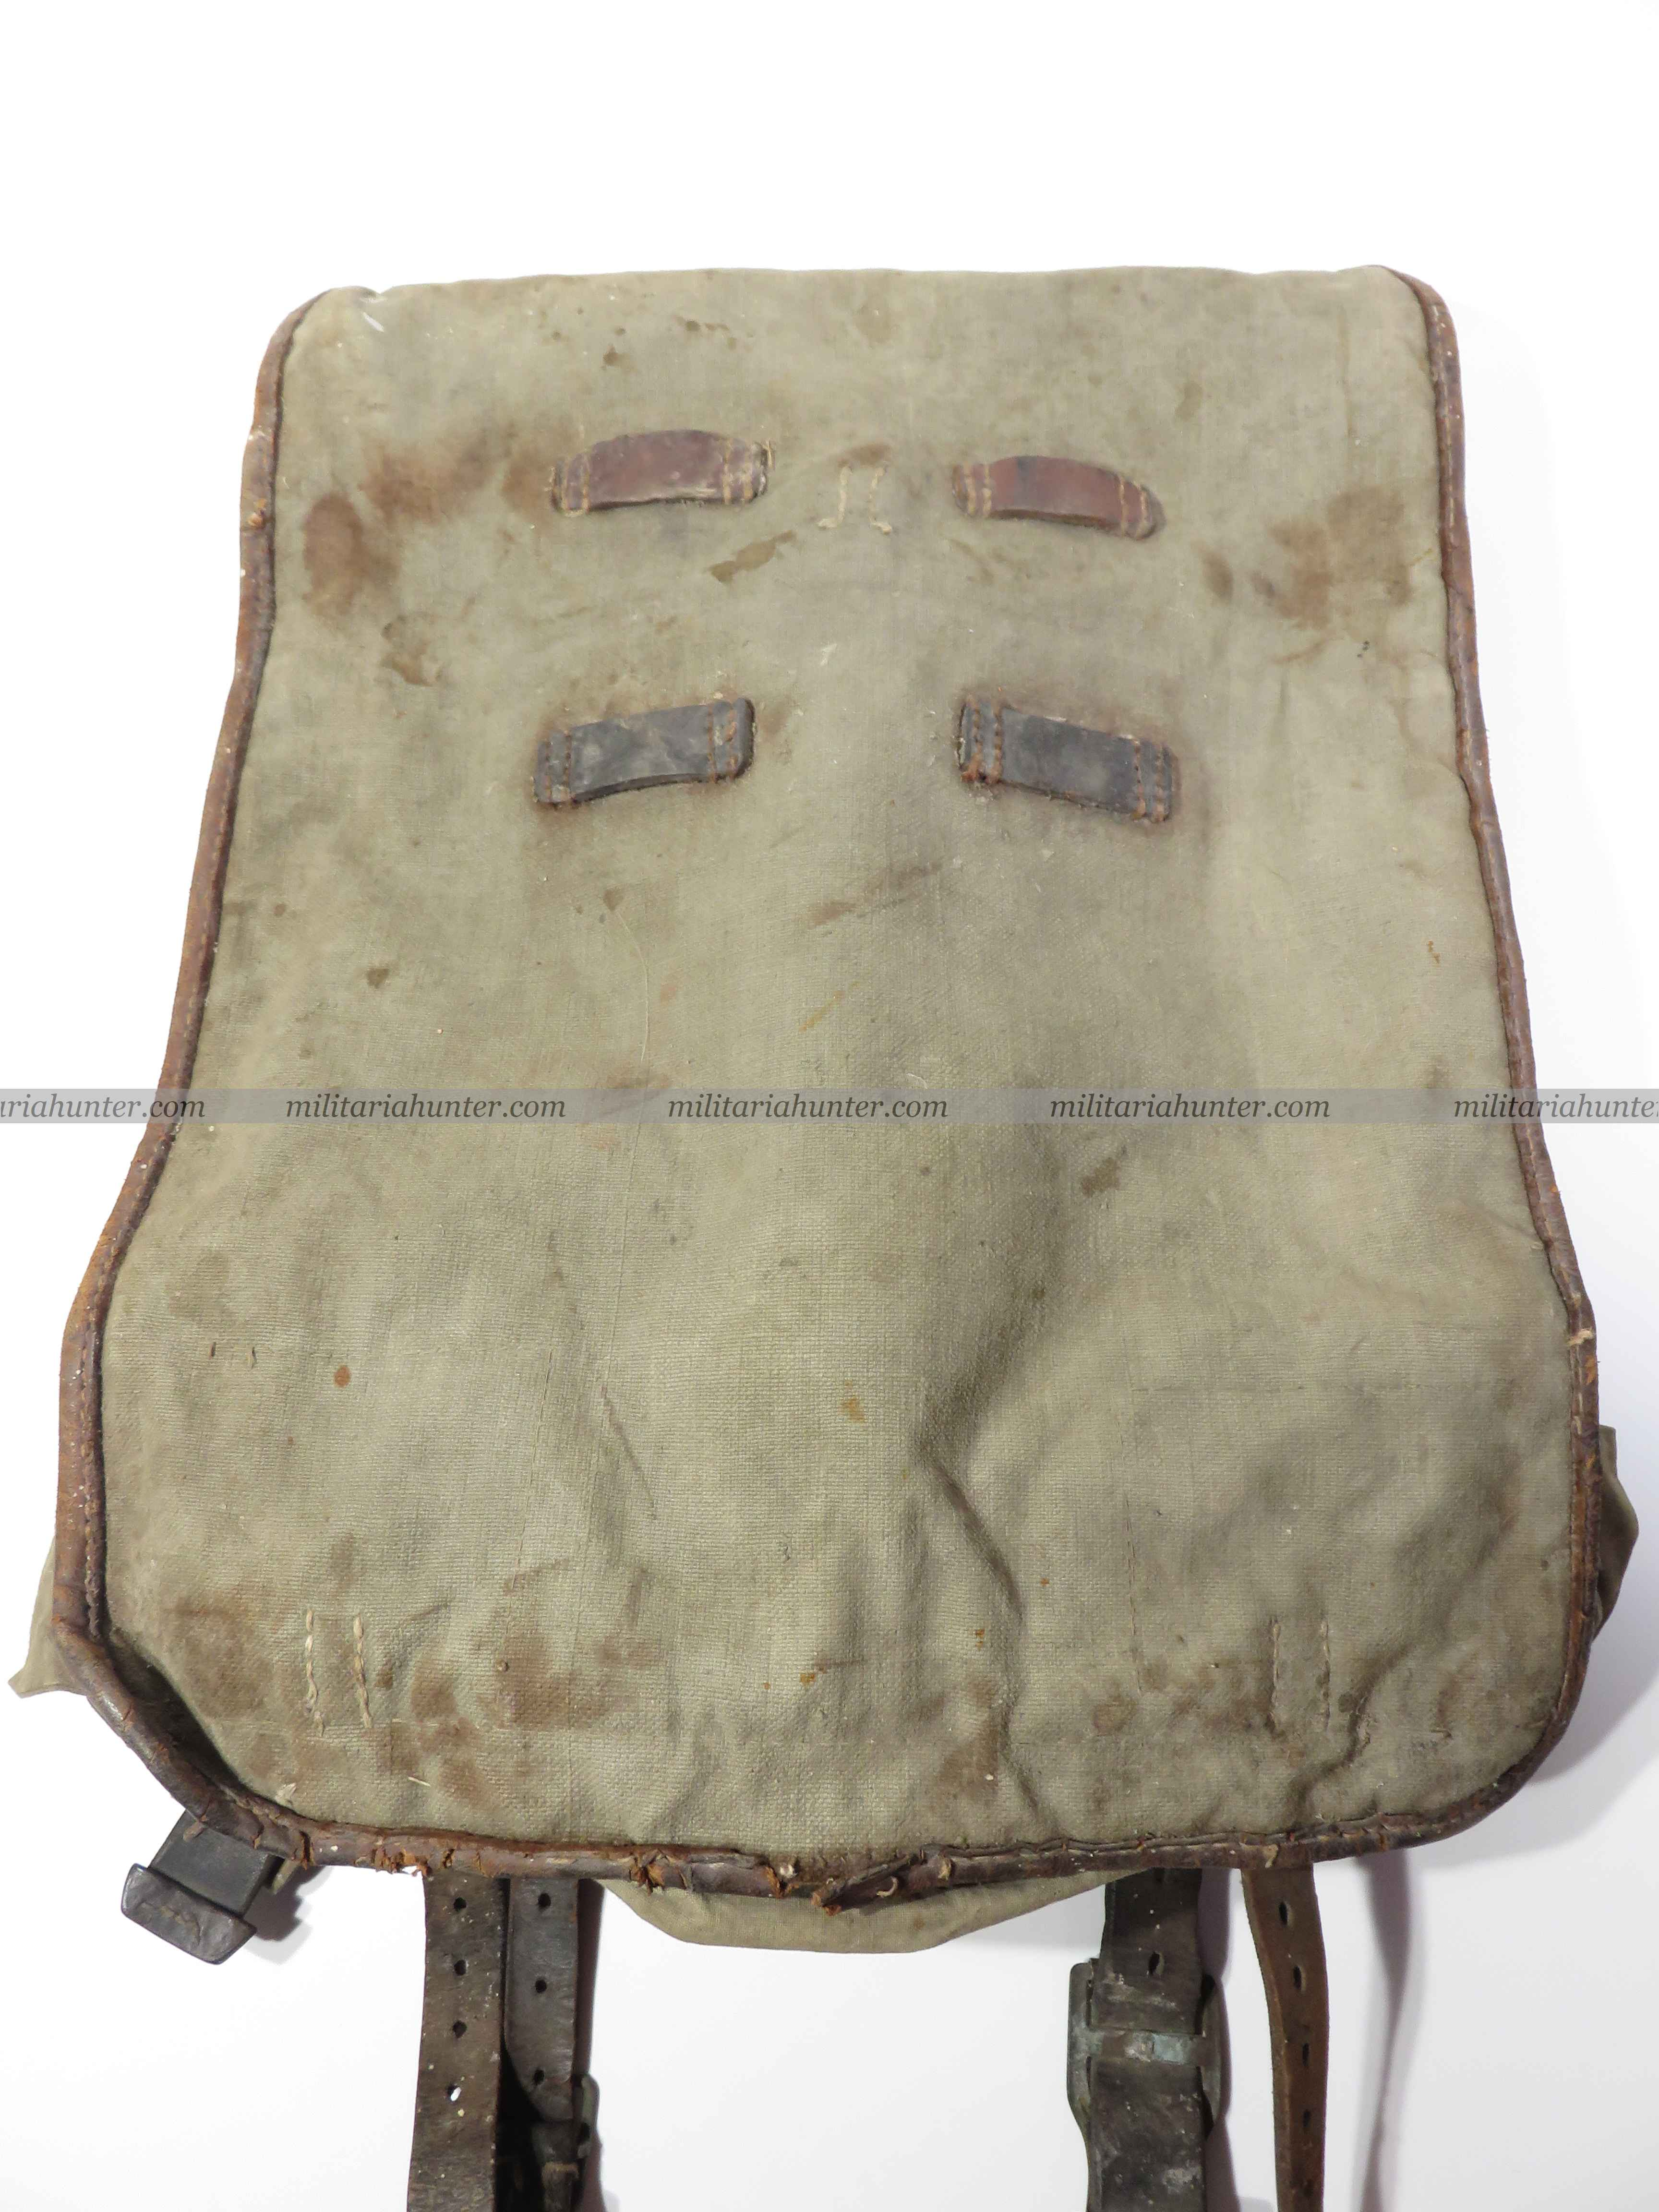 militaria : ww1 german backpack - Tornister allemand 19 Pionier Alsacien